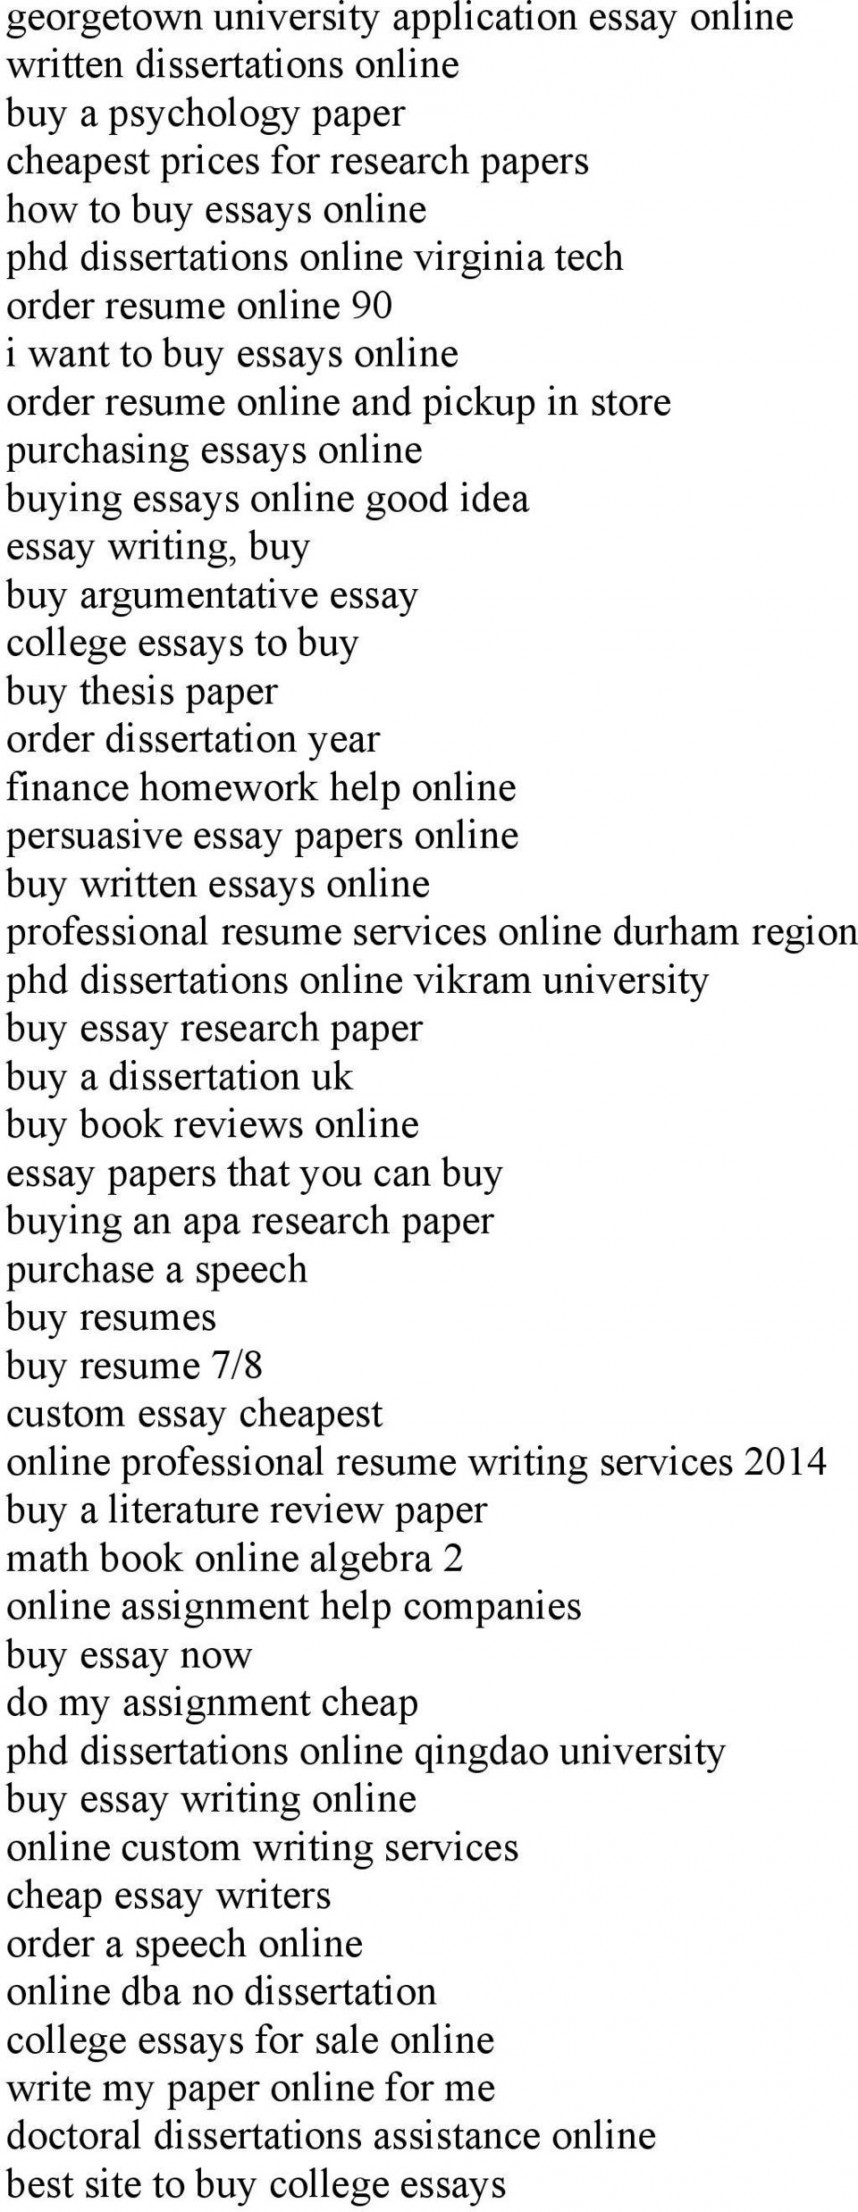 004 Research Paper Buying Page 4 Best A Is Plagiarism Impulse Behavior Online 868